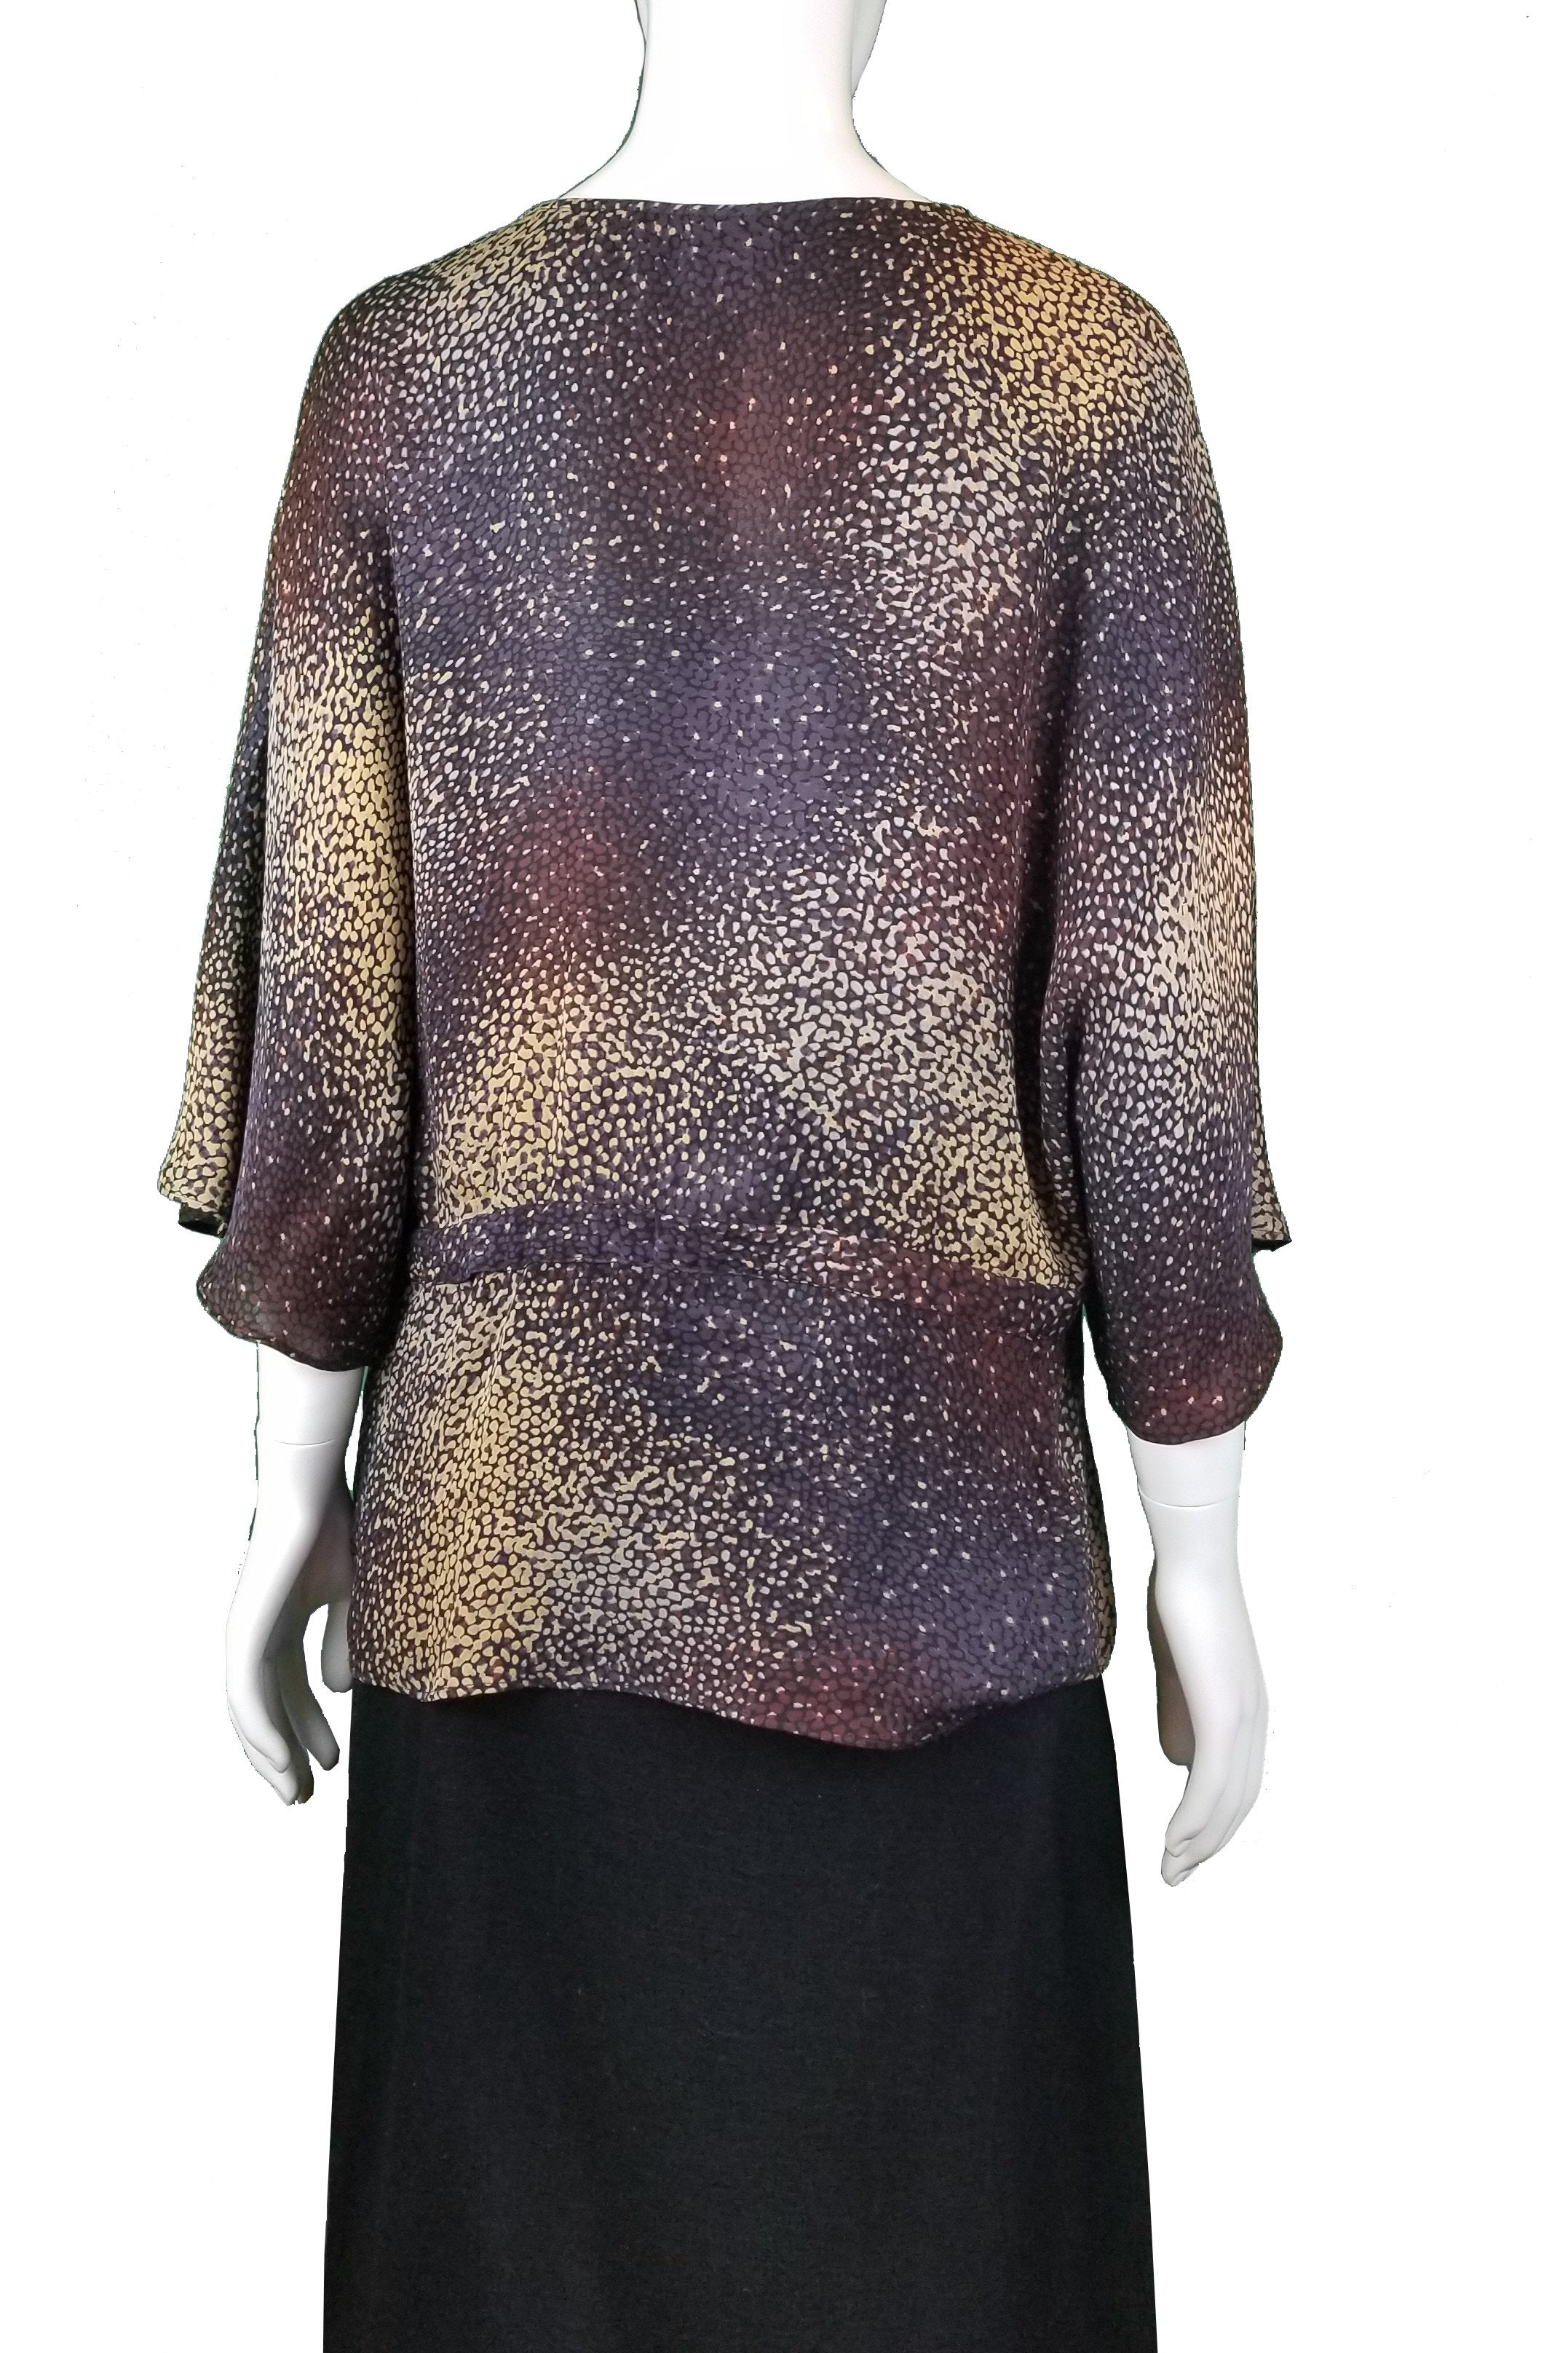 Parker Pure Silk Leopard Print Top, It can't get more comfortable and feminine than this light silky women's skirt, Brown, Purple, 100% Silk, Women's top, women's silk top, women's silk shirt, women's leopard print top